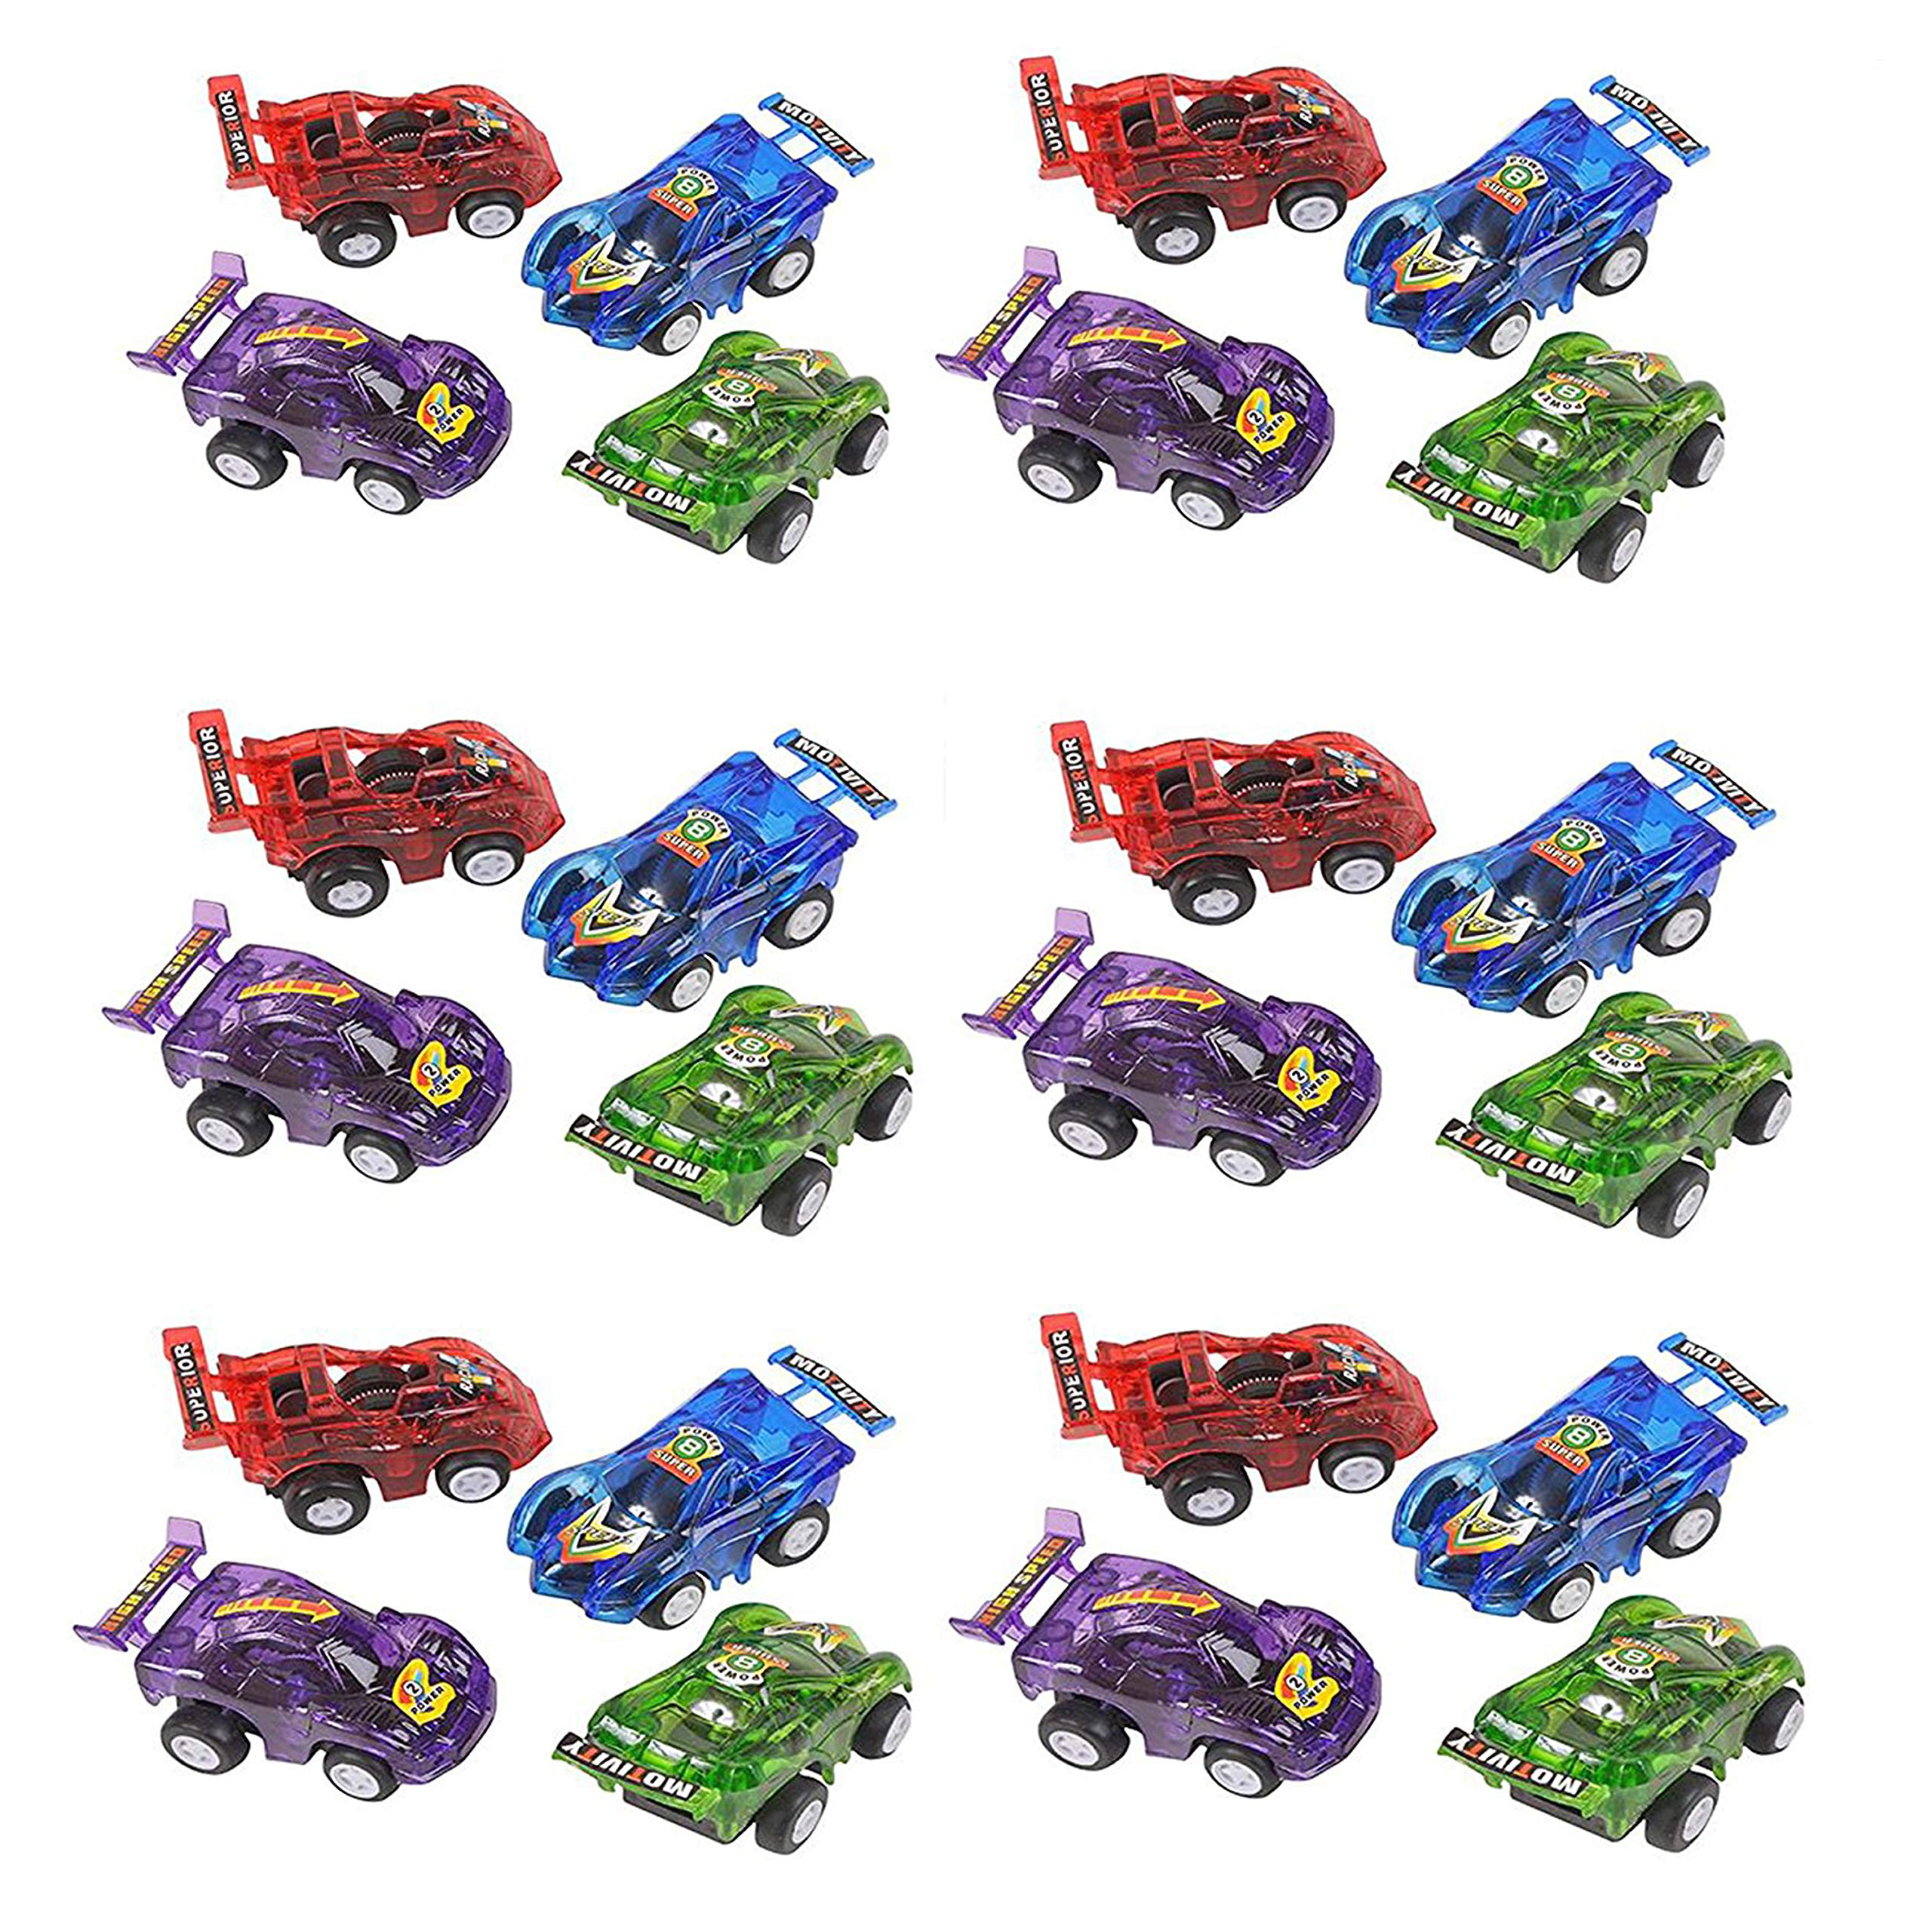 24 Piece 2.5'' Party Pack Assorted Pull Back Racing Cars. - Fun Gift Party Giveaway